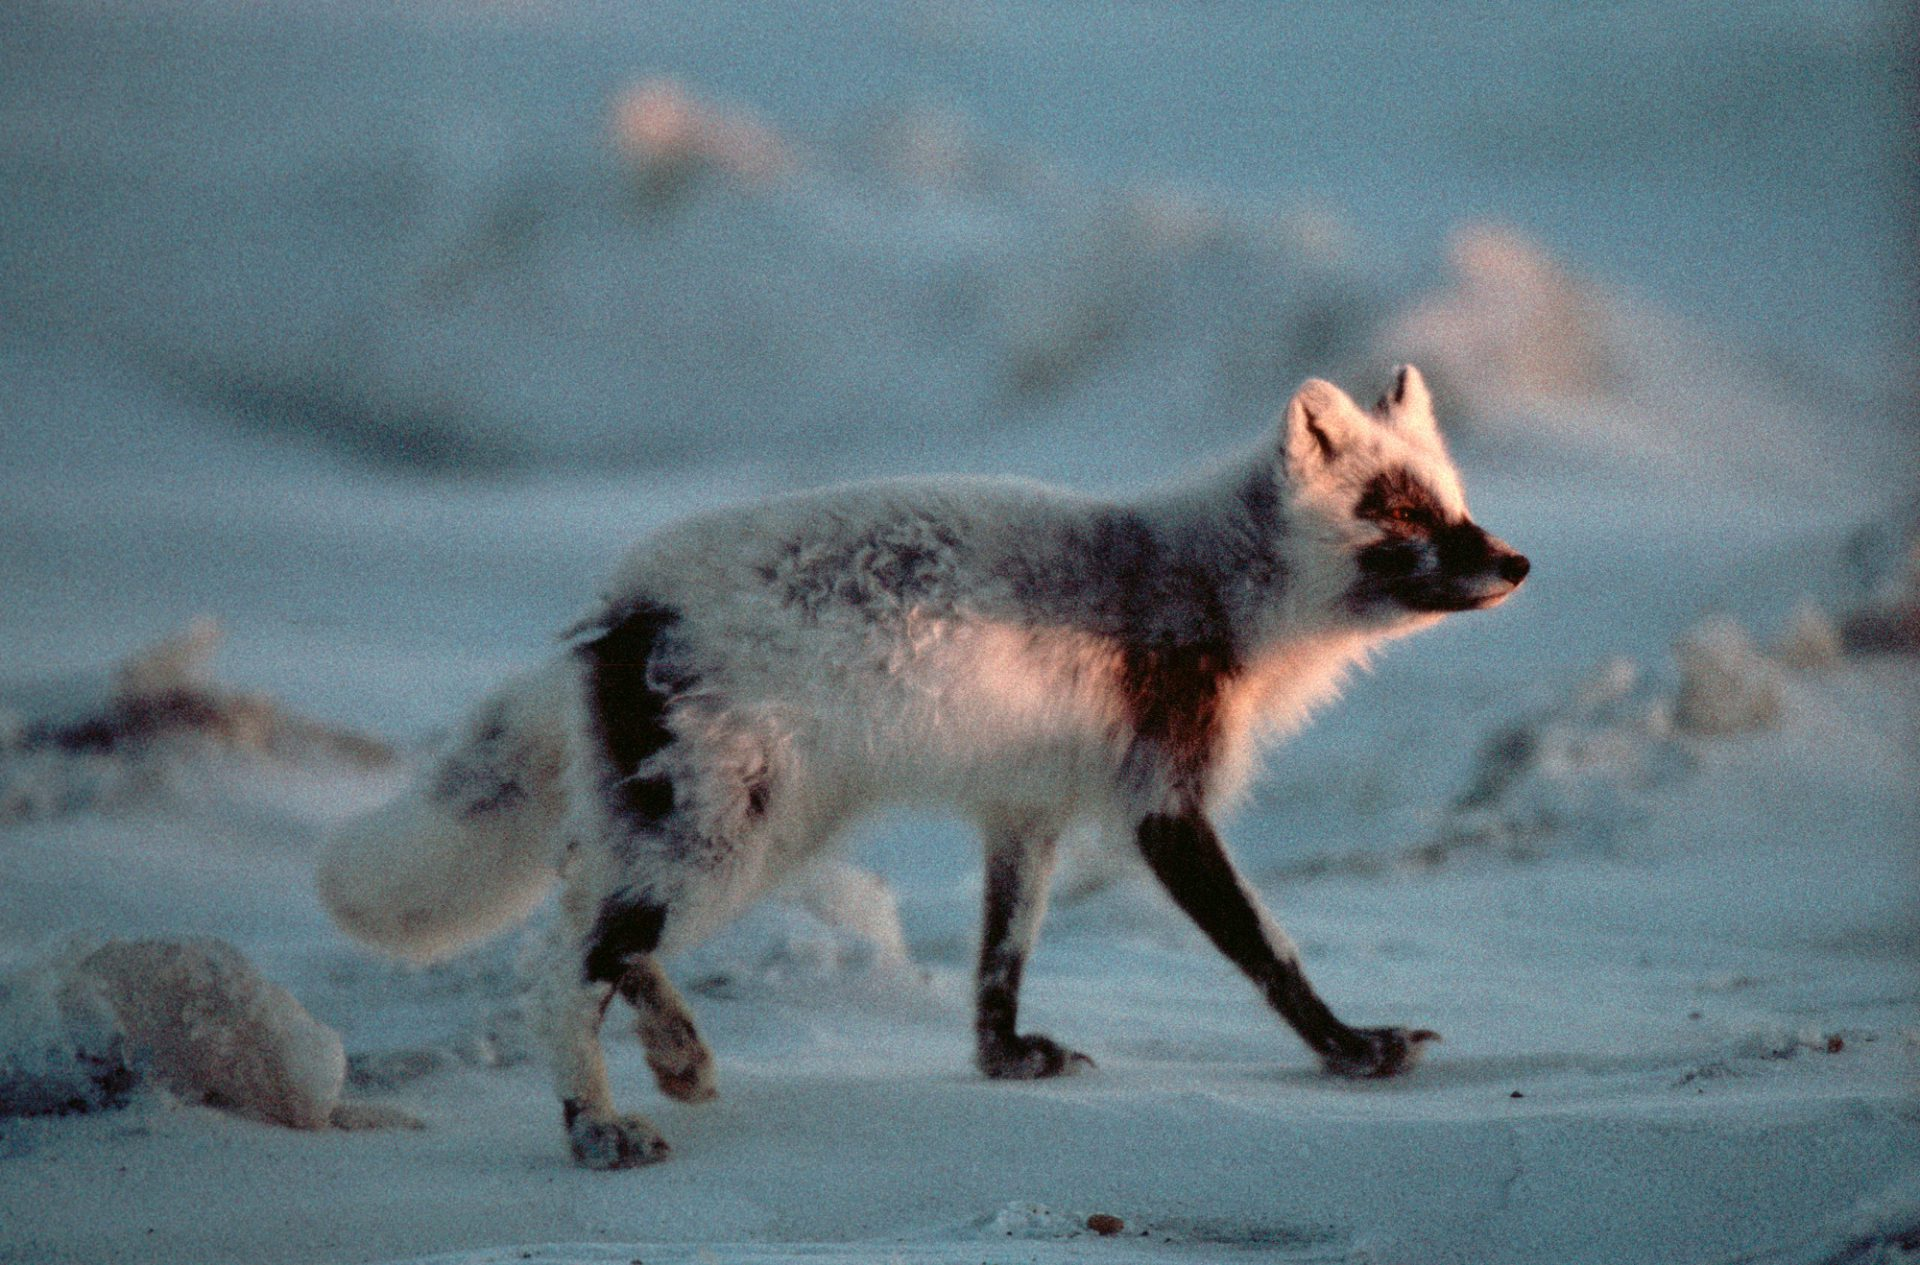 Photo: An Arctic fox (Alopex lagopus) in Prudhoe Bay, Alaska.